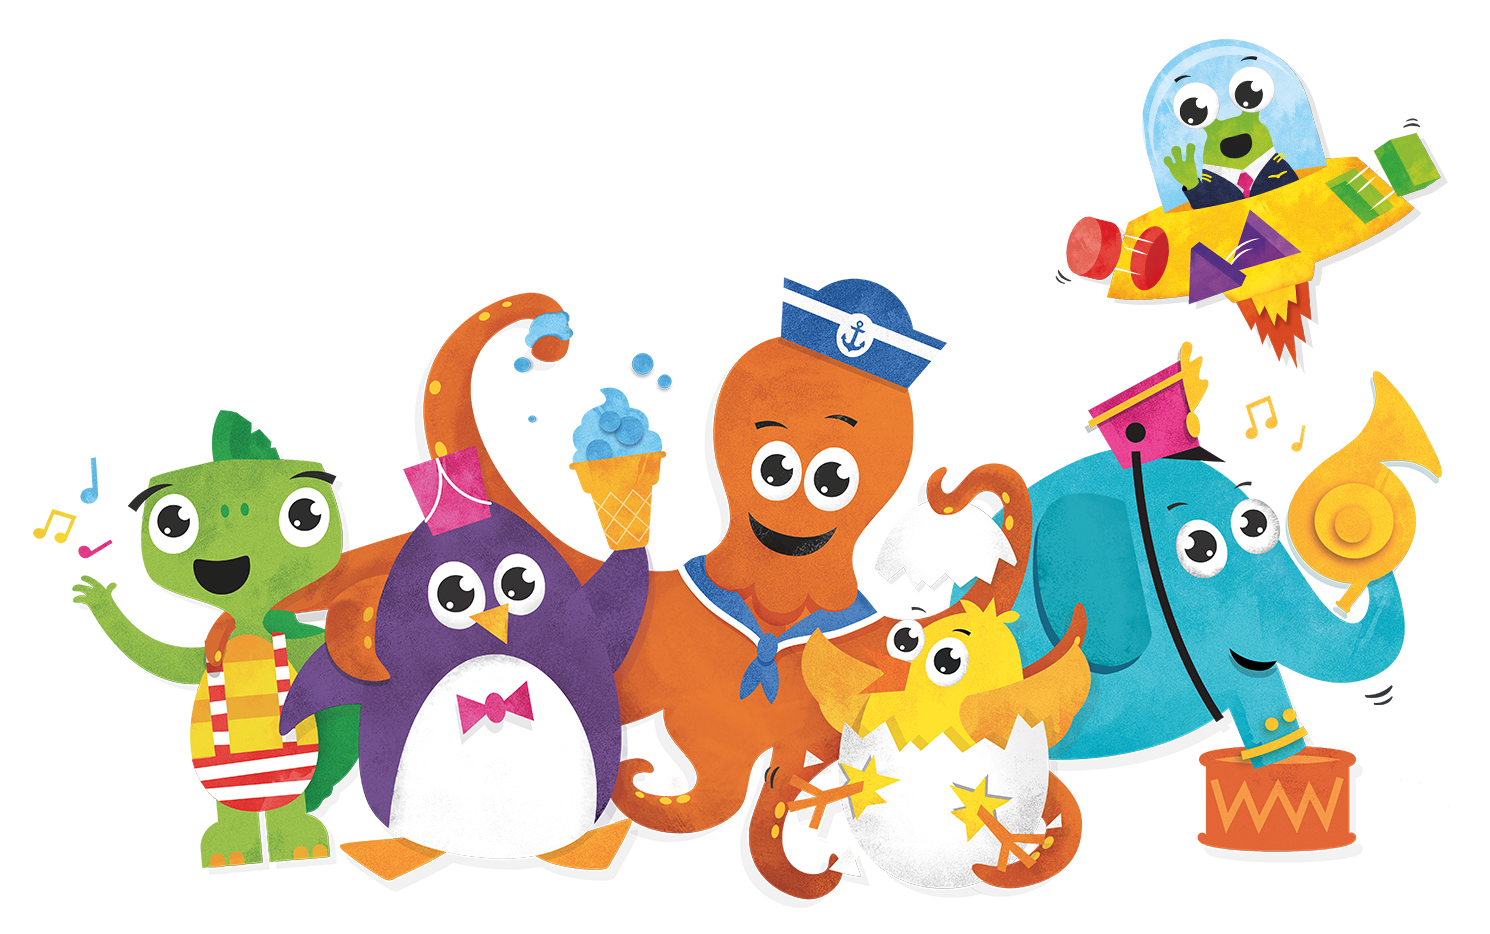 Meet the Toomies